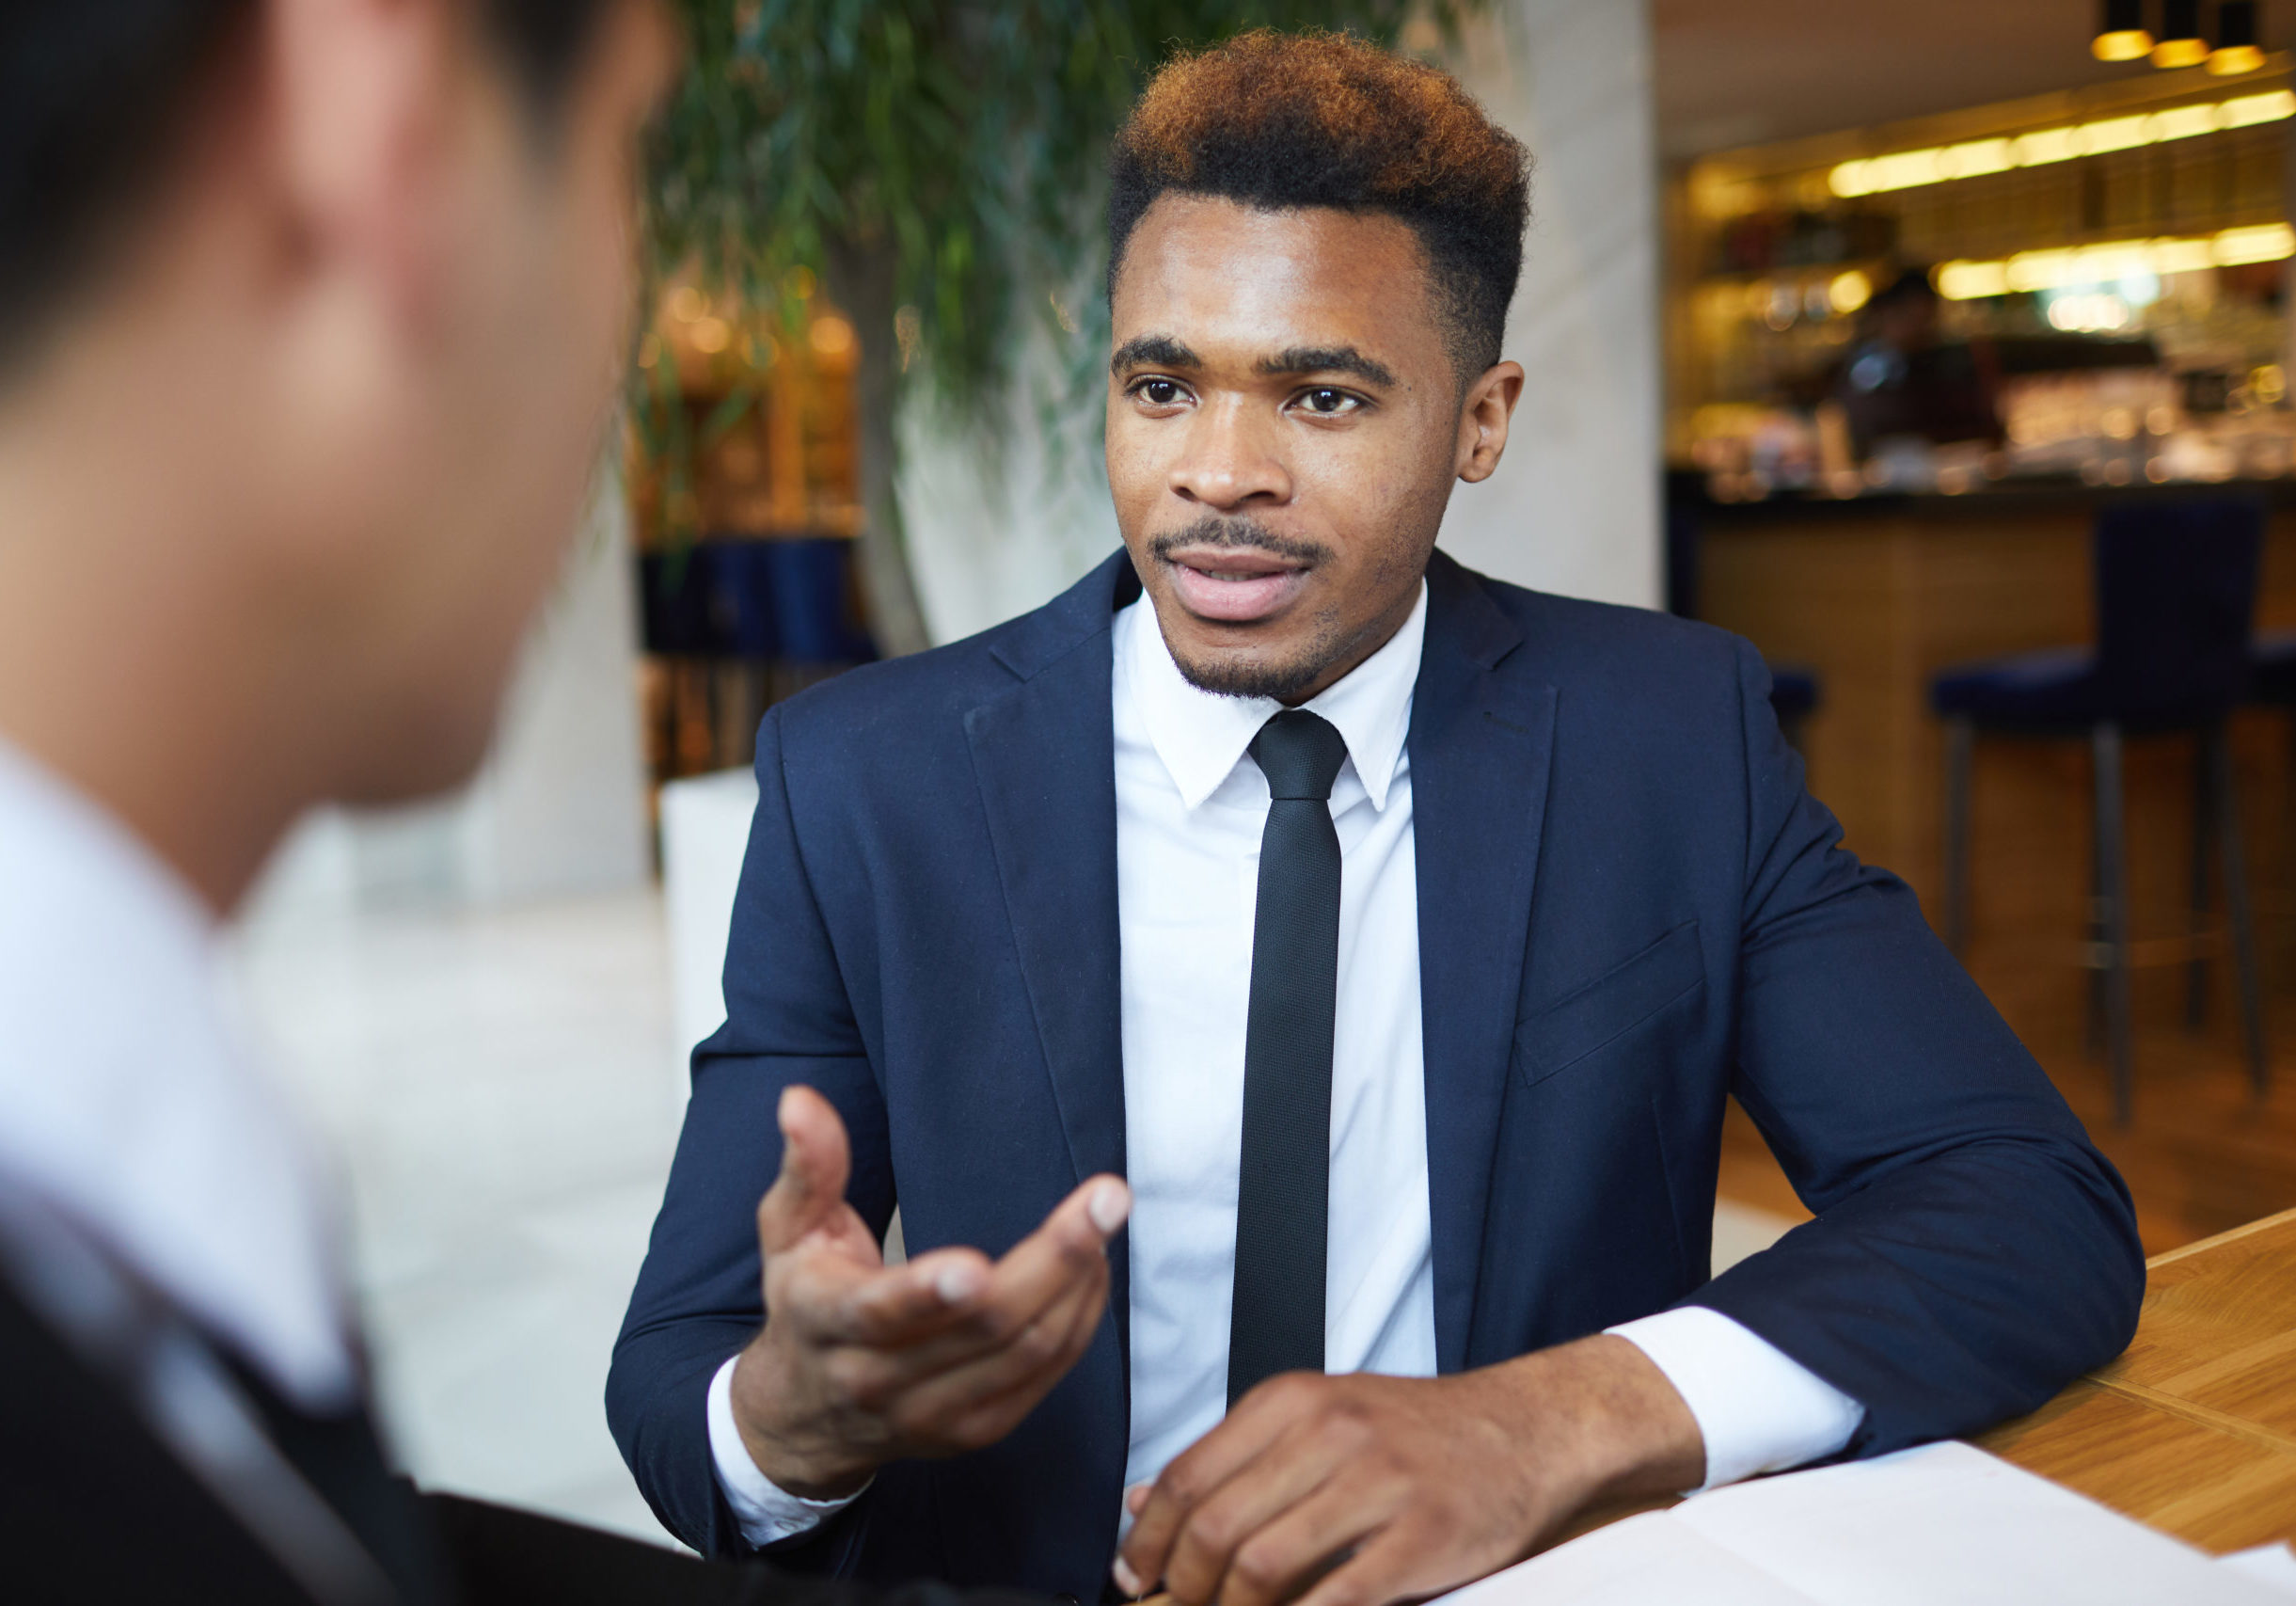 African young businessman has an interview with business partner in informal setting